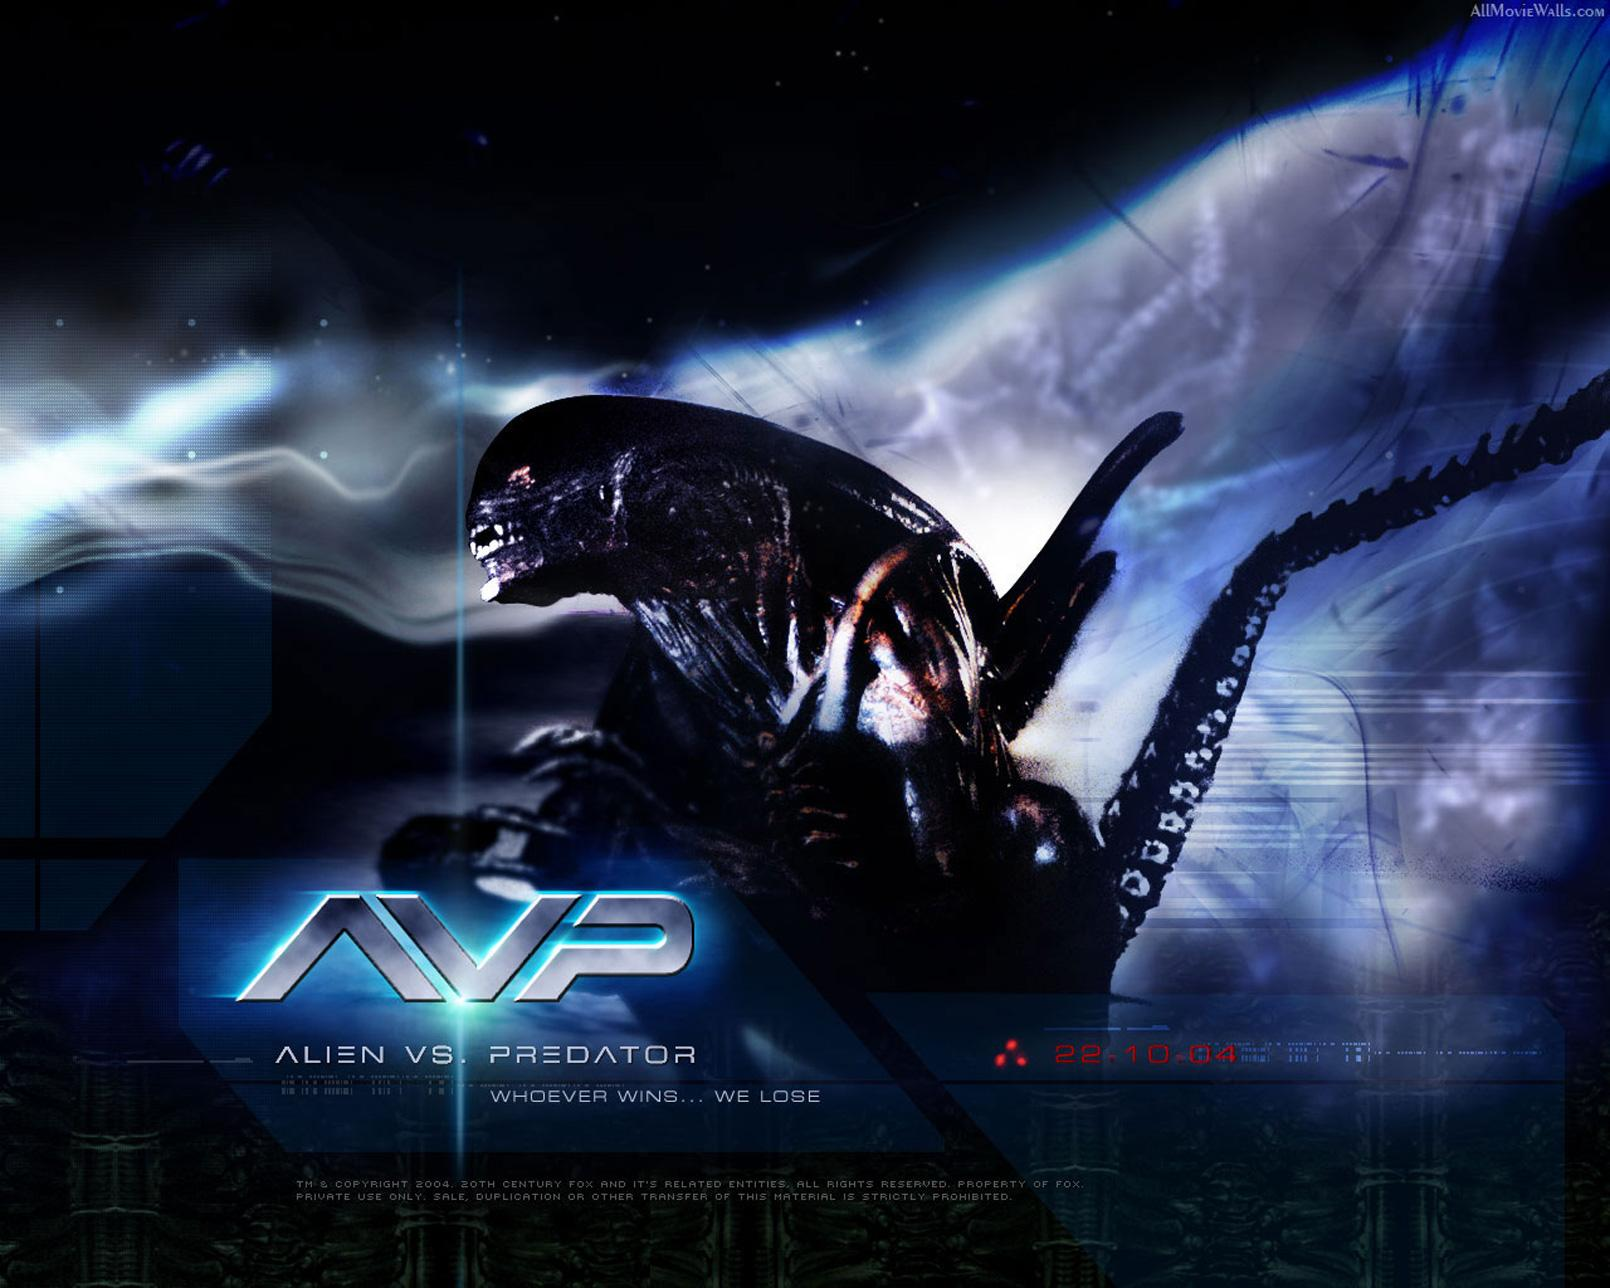 Alien vs Predator - AVP